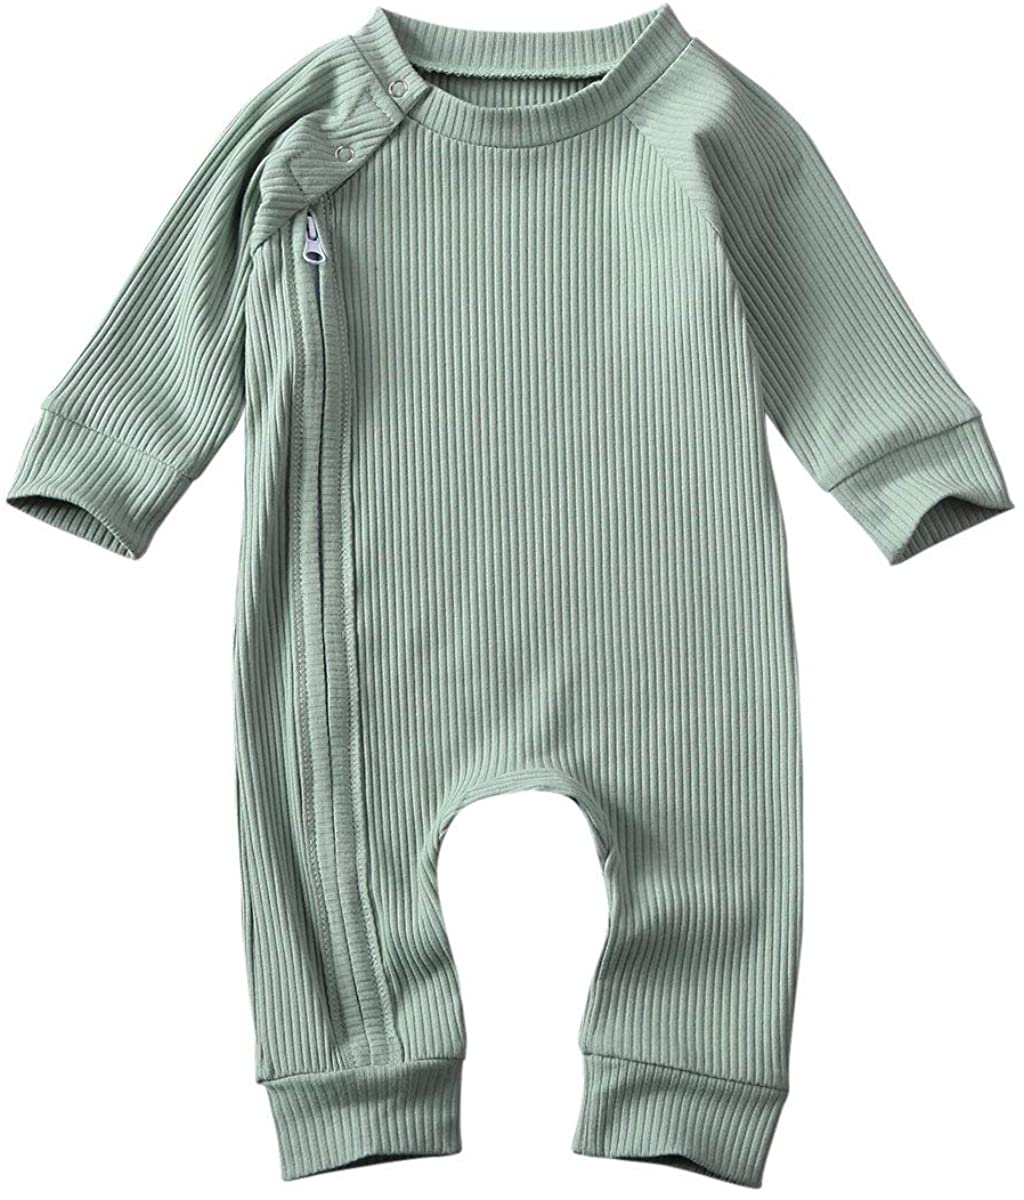 Purchase Baby Girl Boy Romper Bodysuit Solid Jumpsuits Piece Sl Plain One Tucson Mall